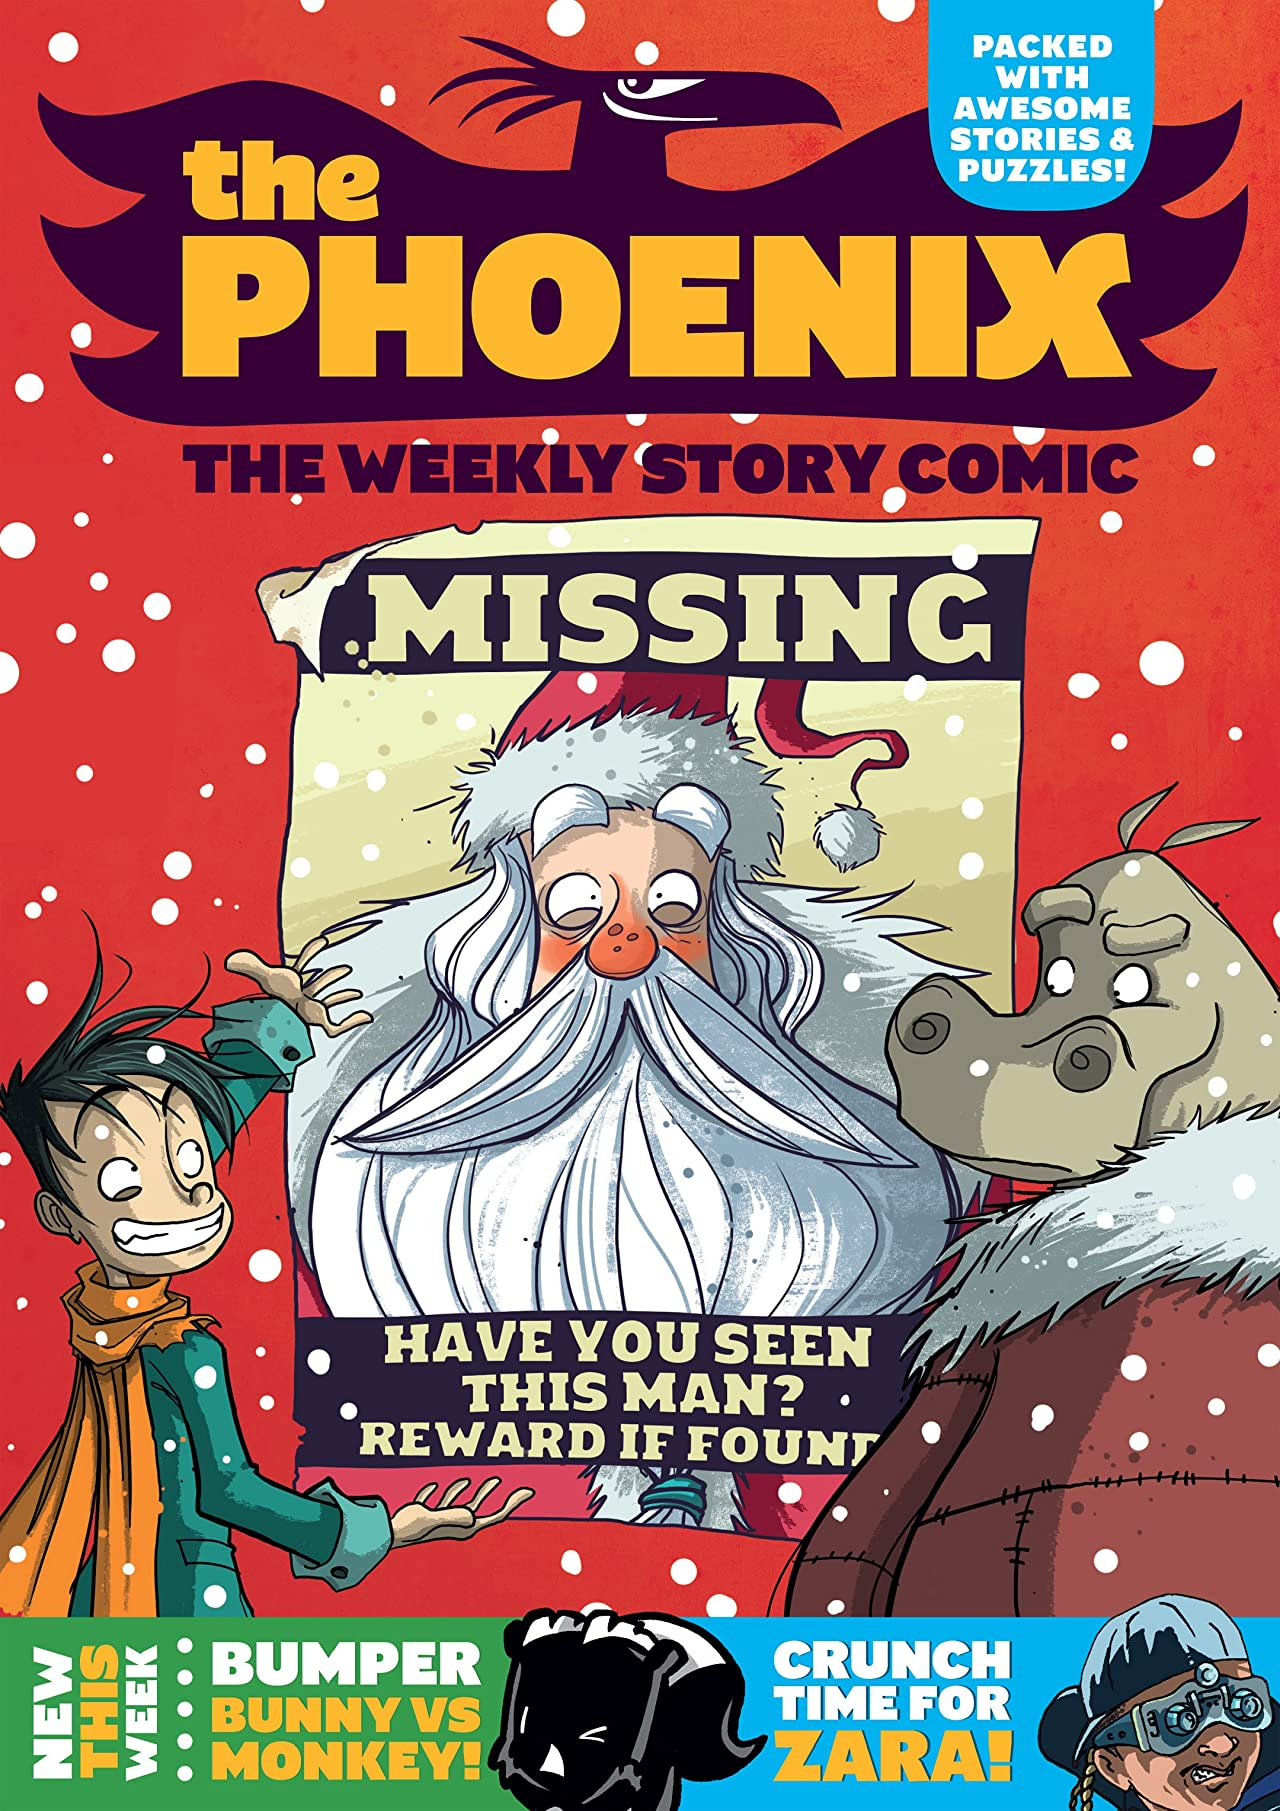 The Phoenix #50: The Weekly Story Comic